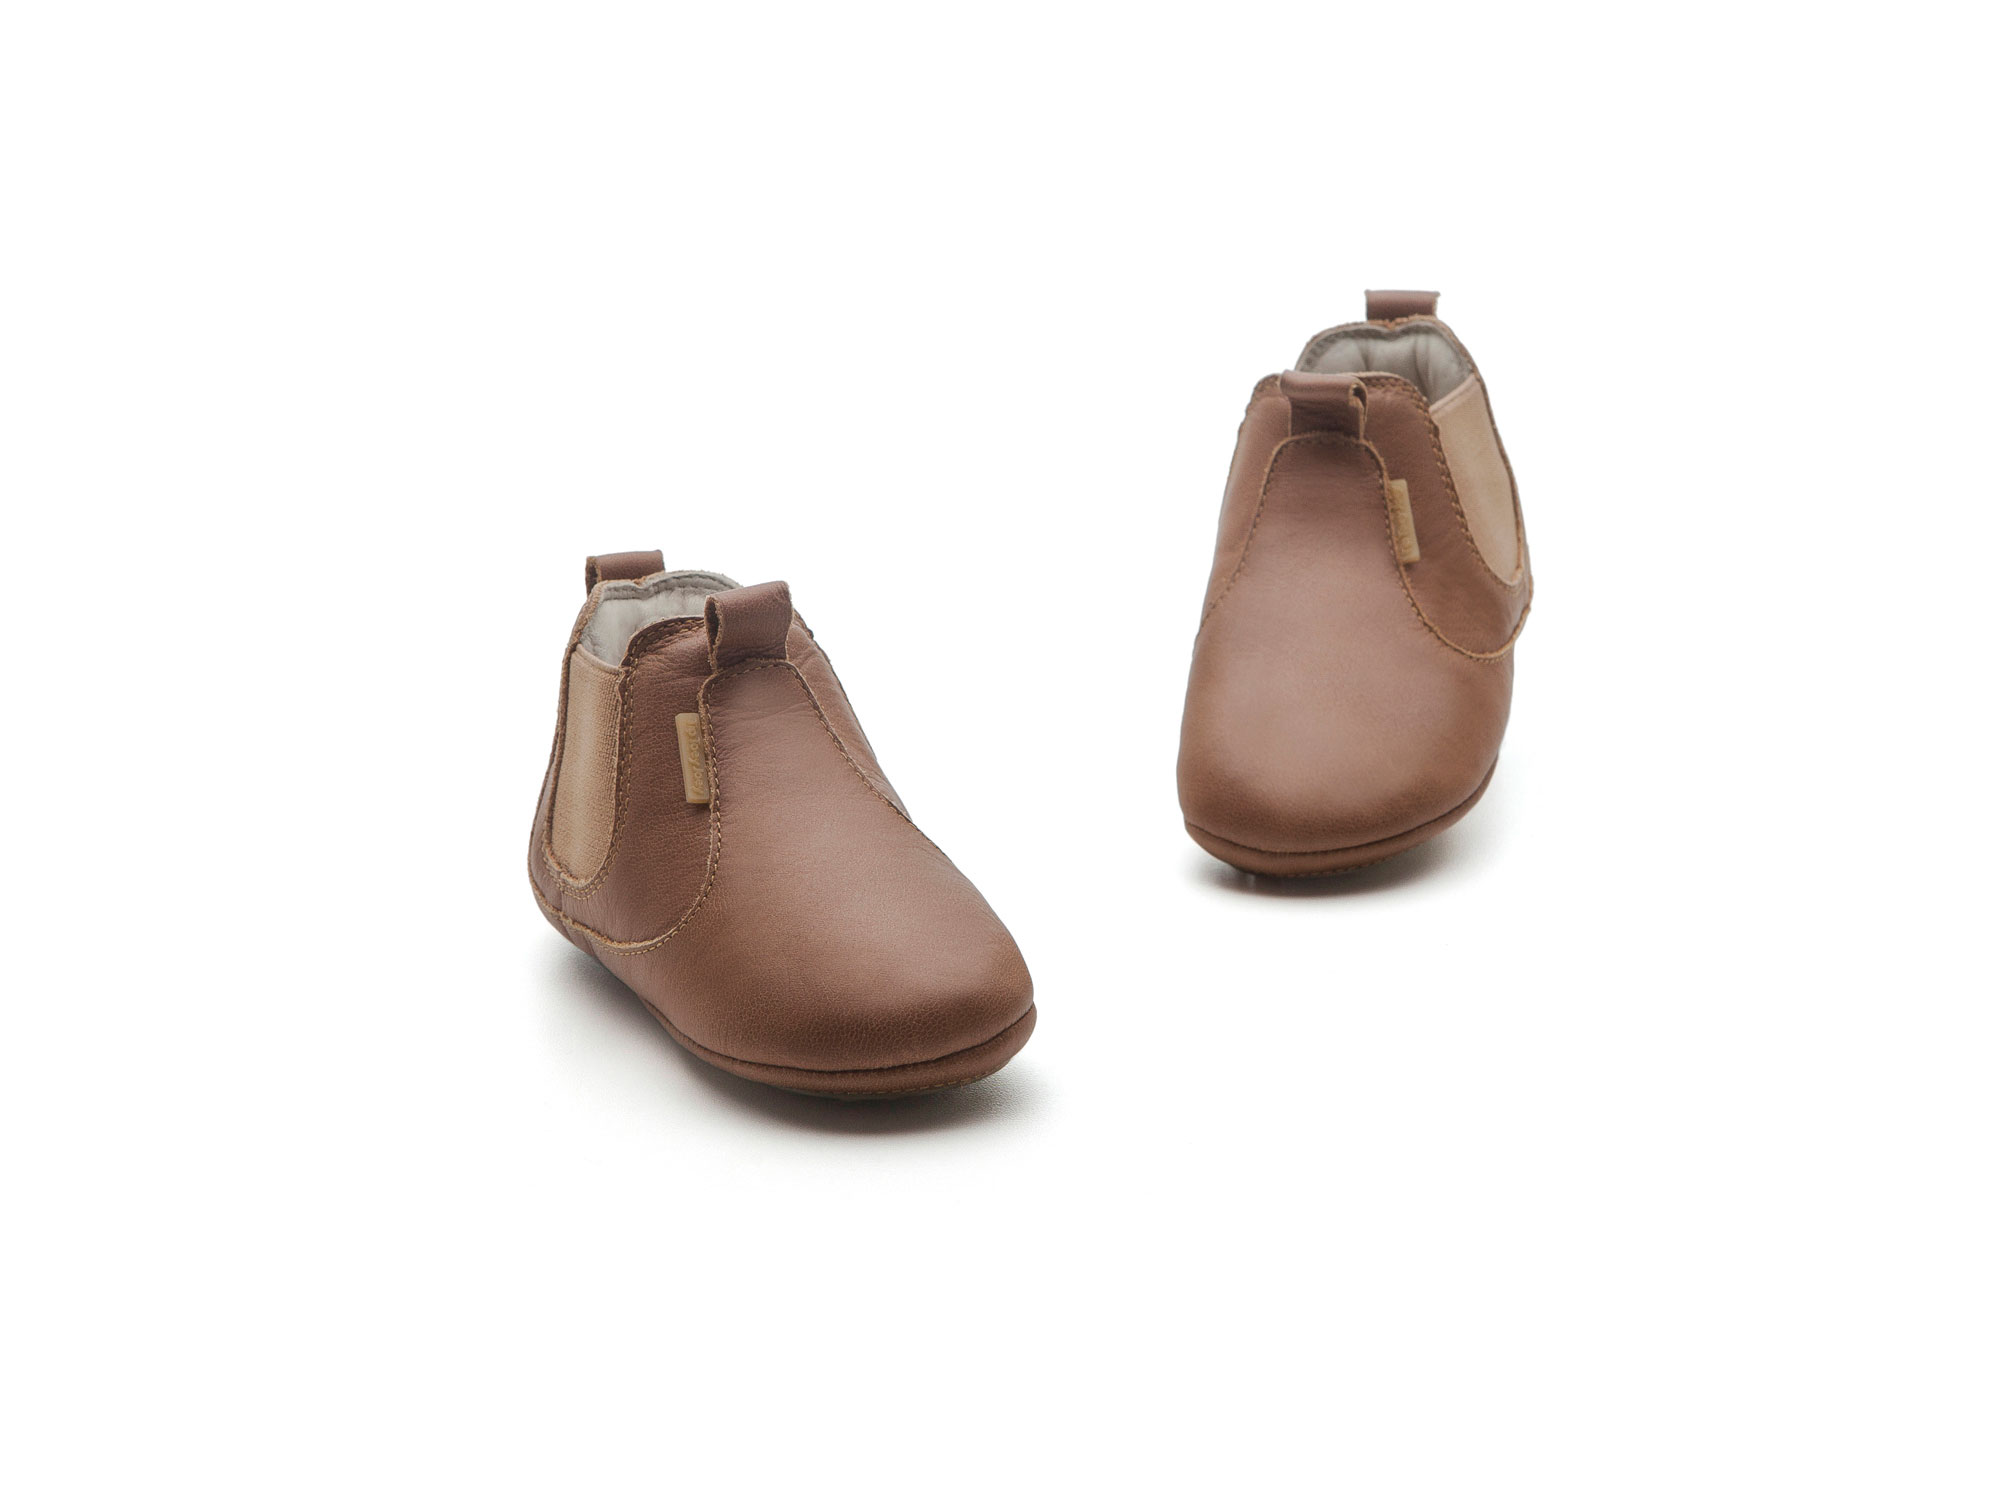 Boot Kicky Whisky  Baby for ages 0 to 2 years - 1